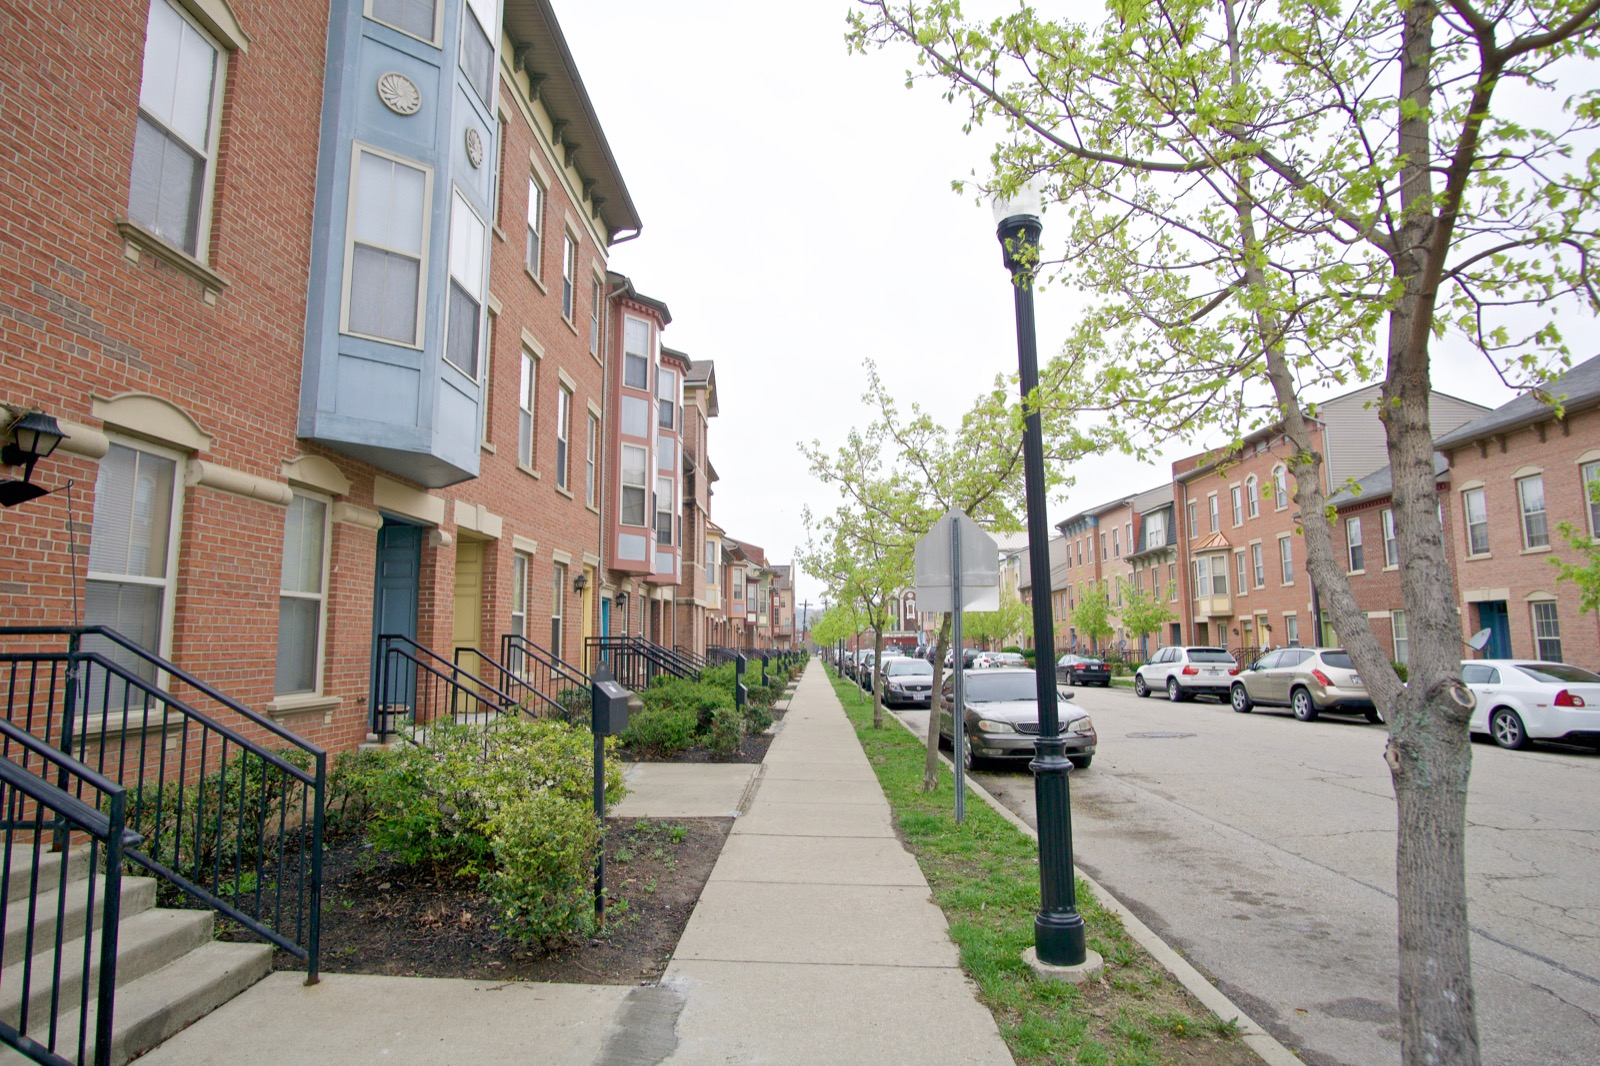 City West came into being in 1999, after HUD awarded the Cincinnati Metropolitan Housing Authority two HOPE VI grants to remake Lincoln Court and Laurel Homes (two enormous housing projects) into a mixed-income neighborhood. The result is a walkable, transit-accessible, and dense area with row houses and lush green space. FC Cincinnati's incoming stadium is planned for the site next to City West. / Image: Brian Planalp // Published: 4.26.18